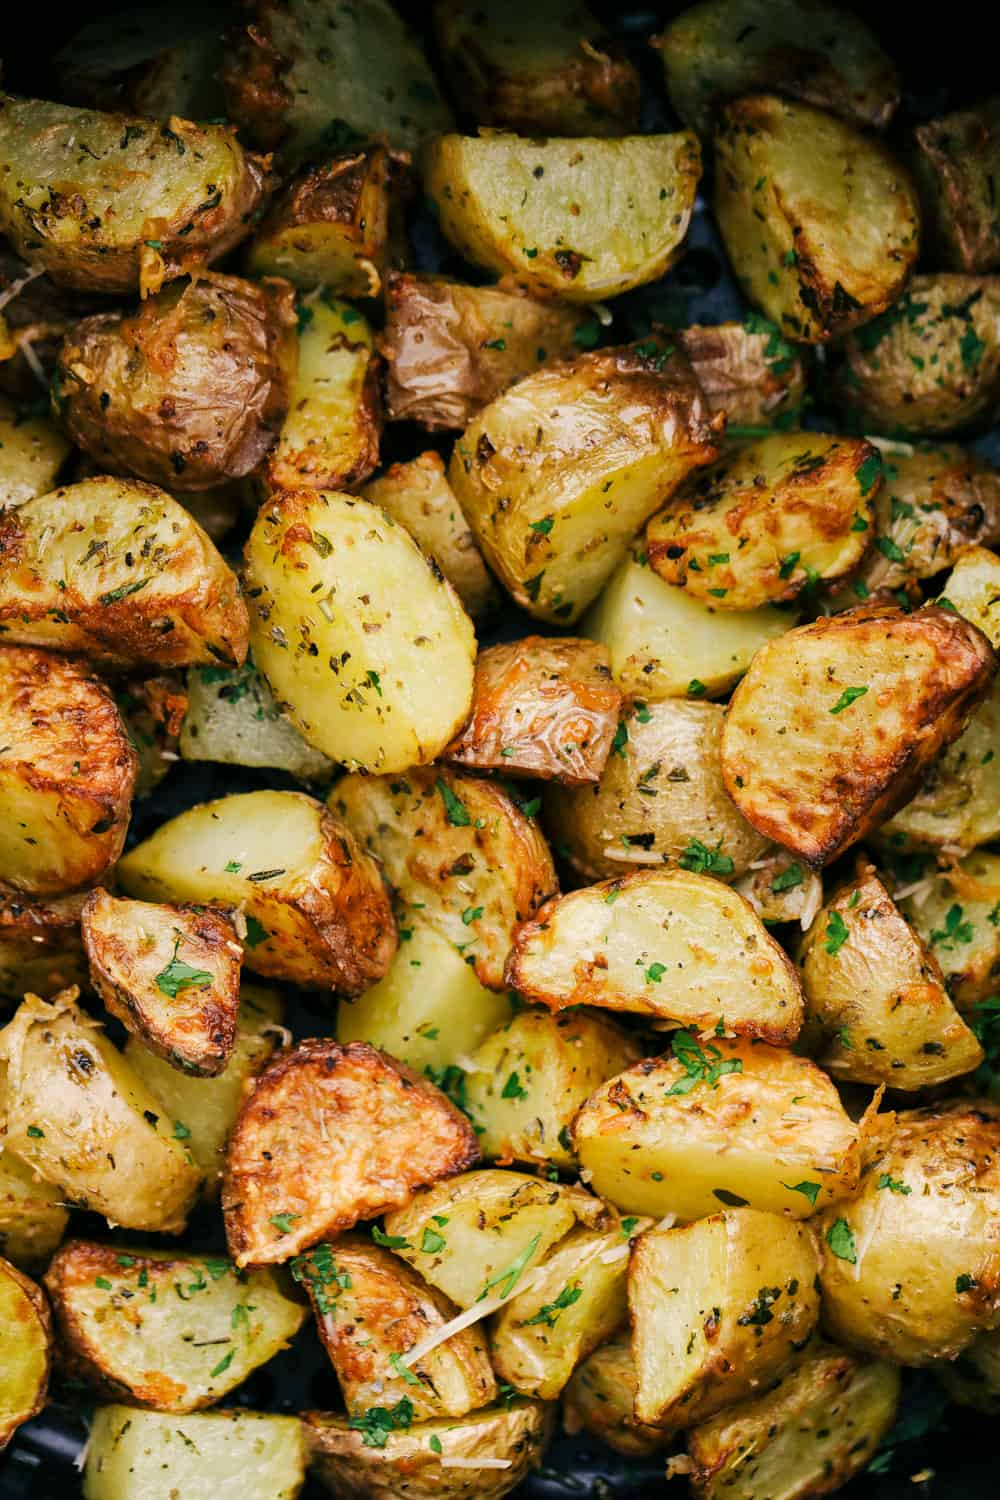 Perfectly roasted seasoned air fryer potatoes.